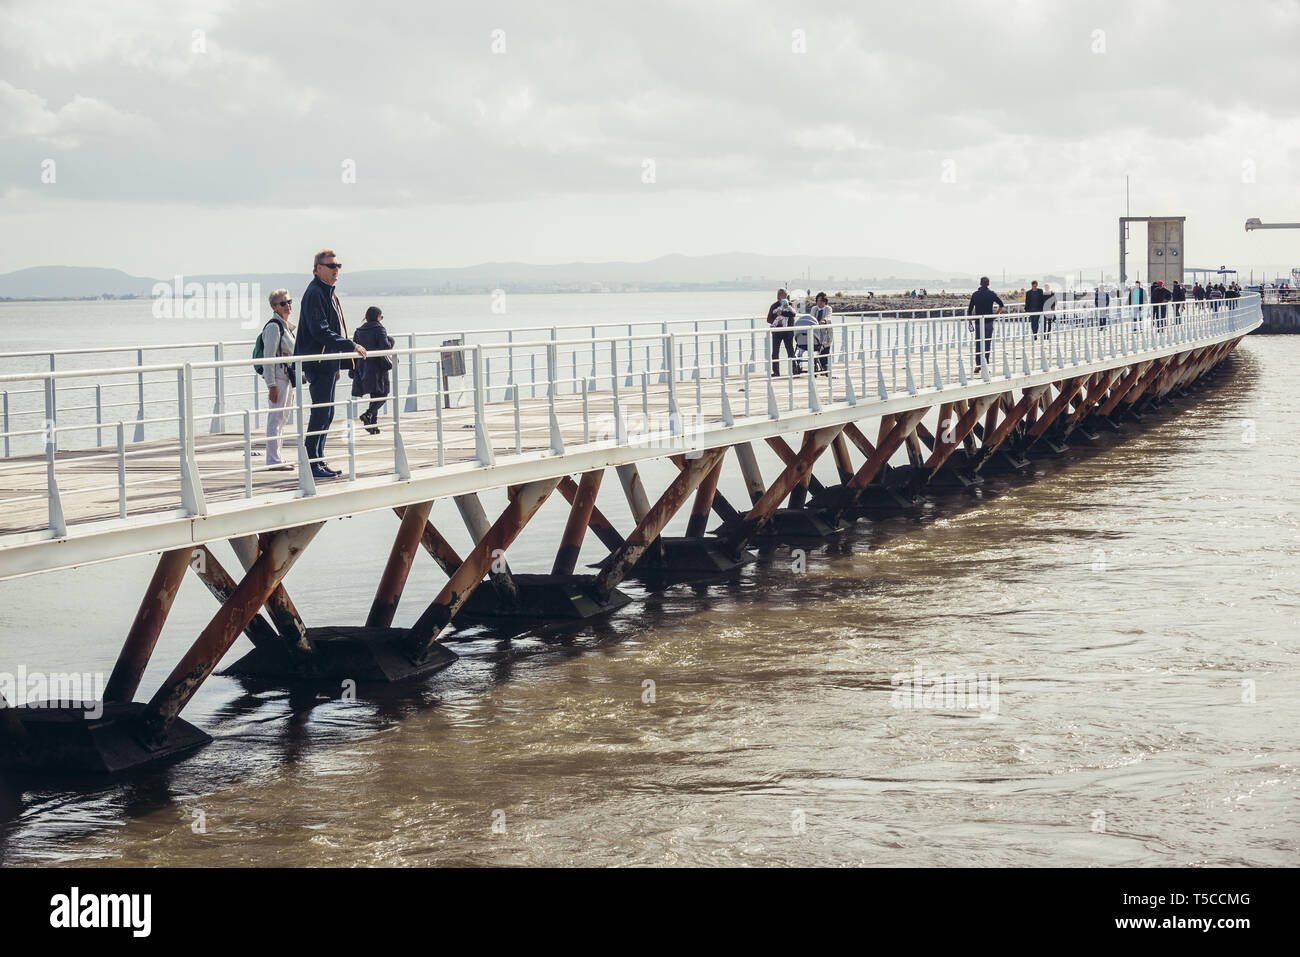 Passeio das Tagides pier in Park of Nations in Lisbon city, Portugal - Stock Image